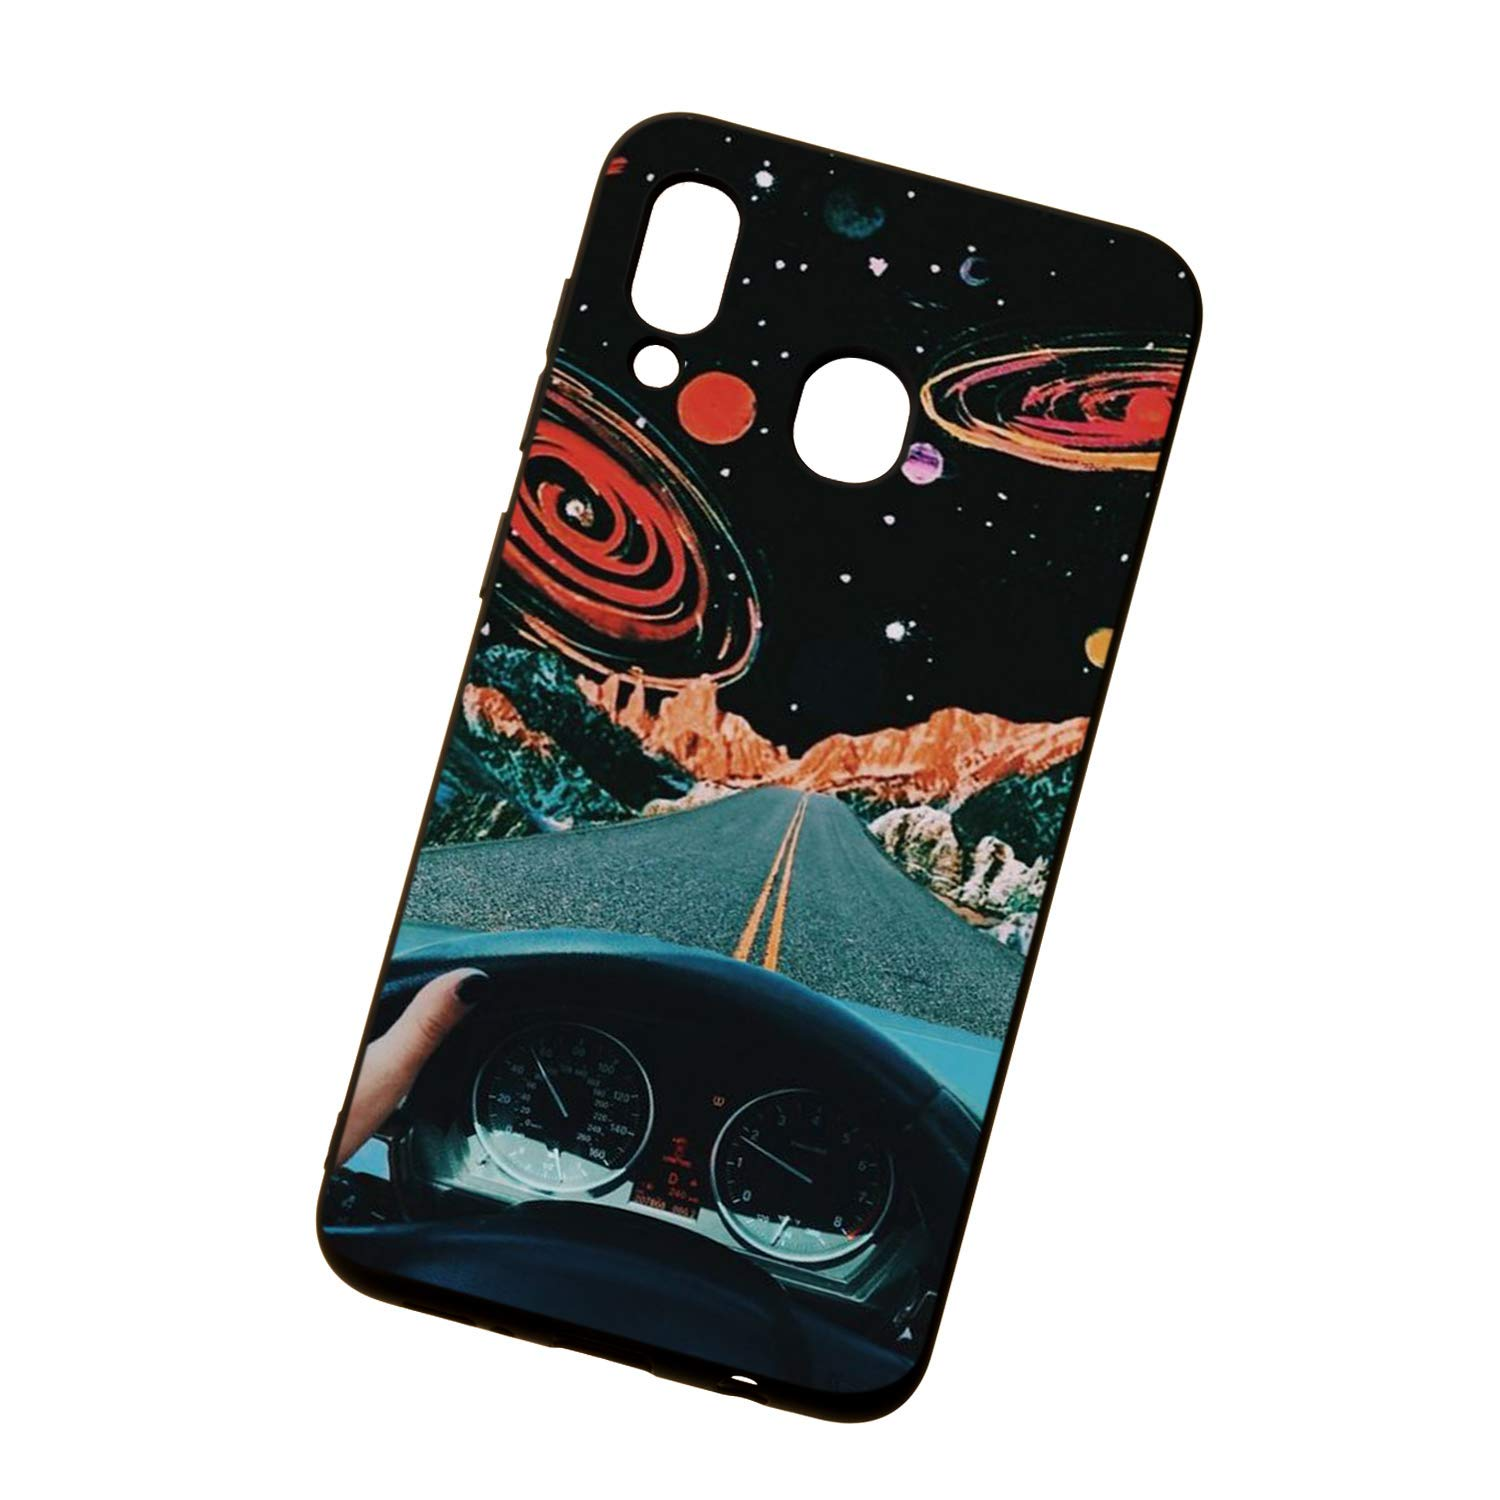 Crystal Clear Ultra Thin Transparent Compatible with for Samsung A40,Soft Silicone TPU Non Slip Rubber Gel Frame Colorful Flexible Bumper Cute Romantic Flower Animal Cartoon Design Pattern